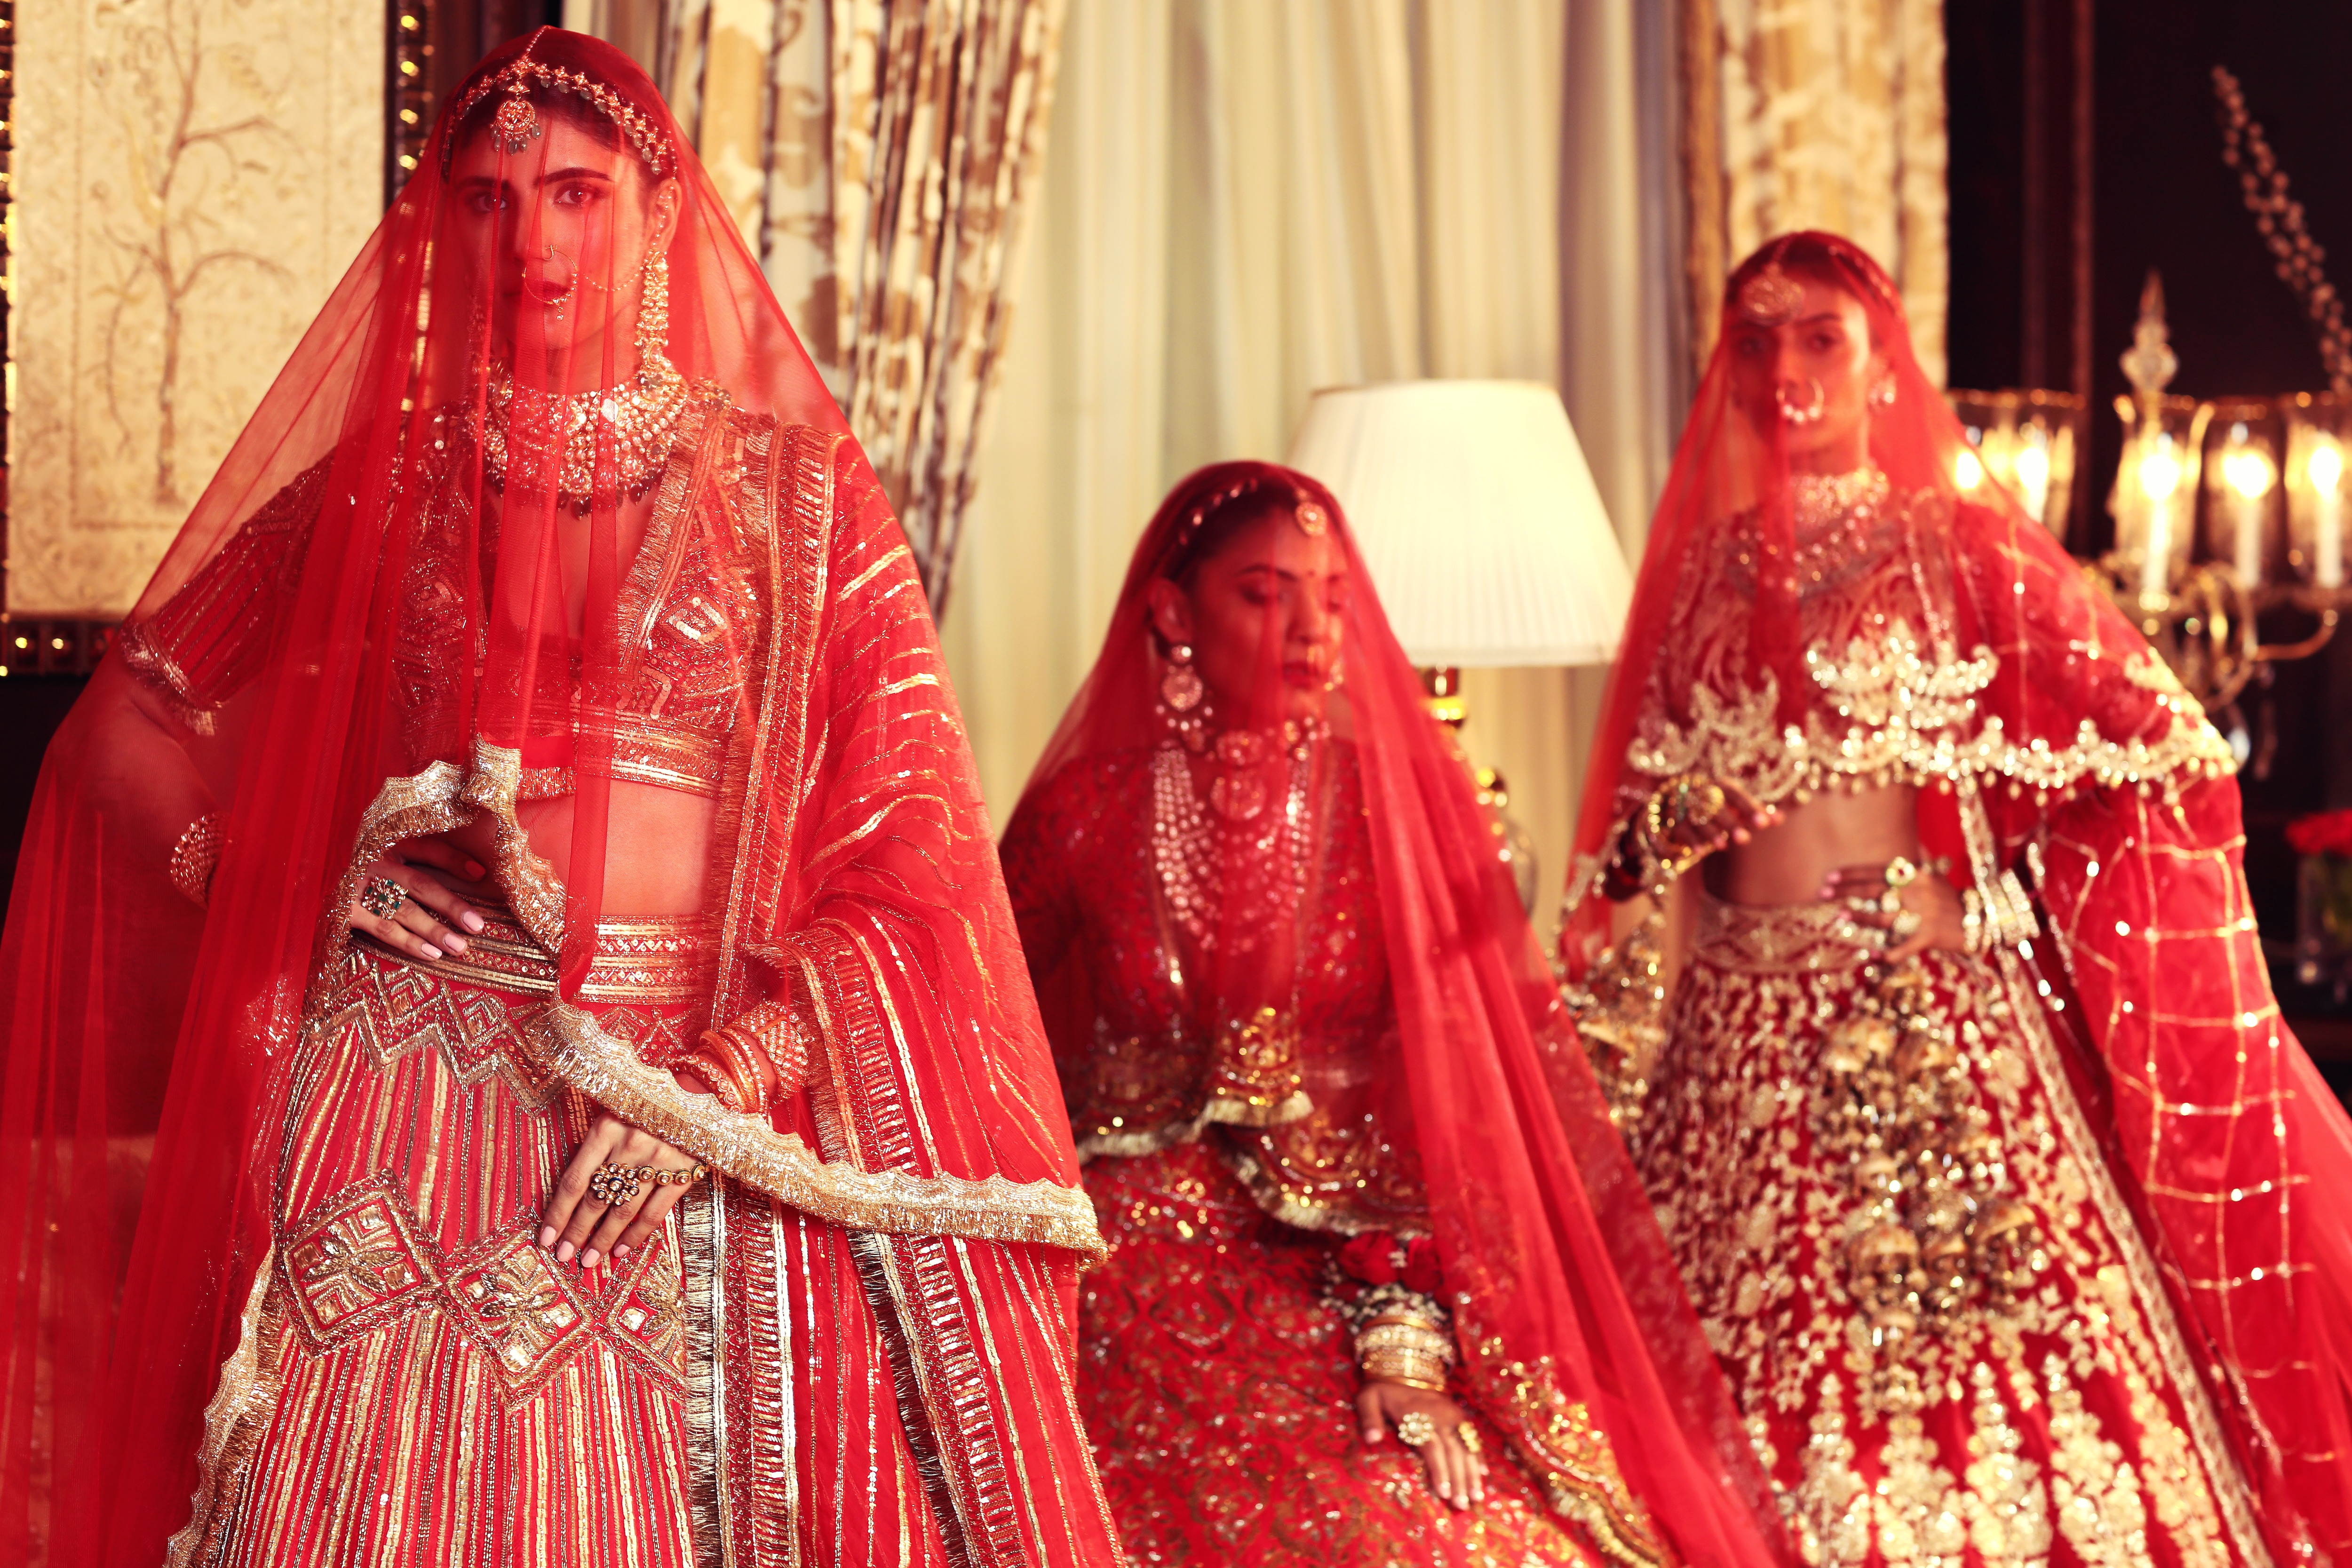 Brides donned in veils